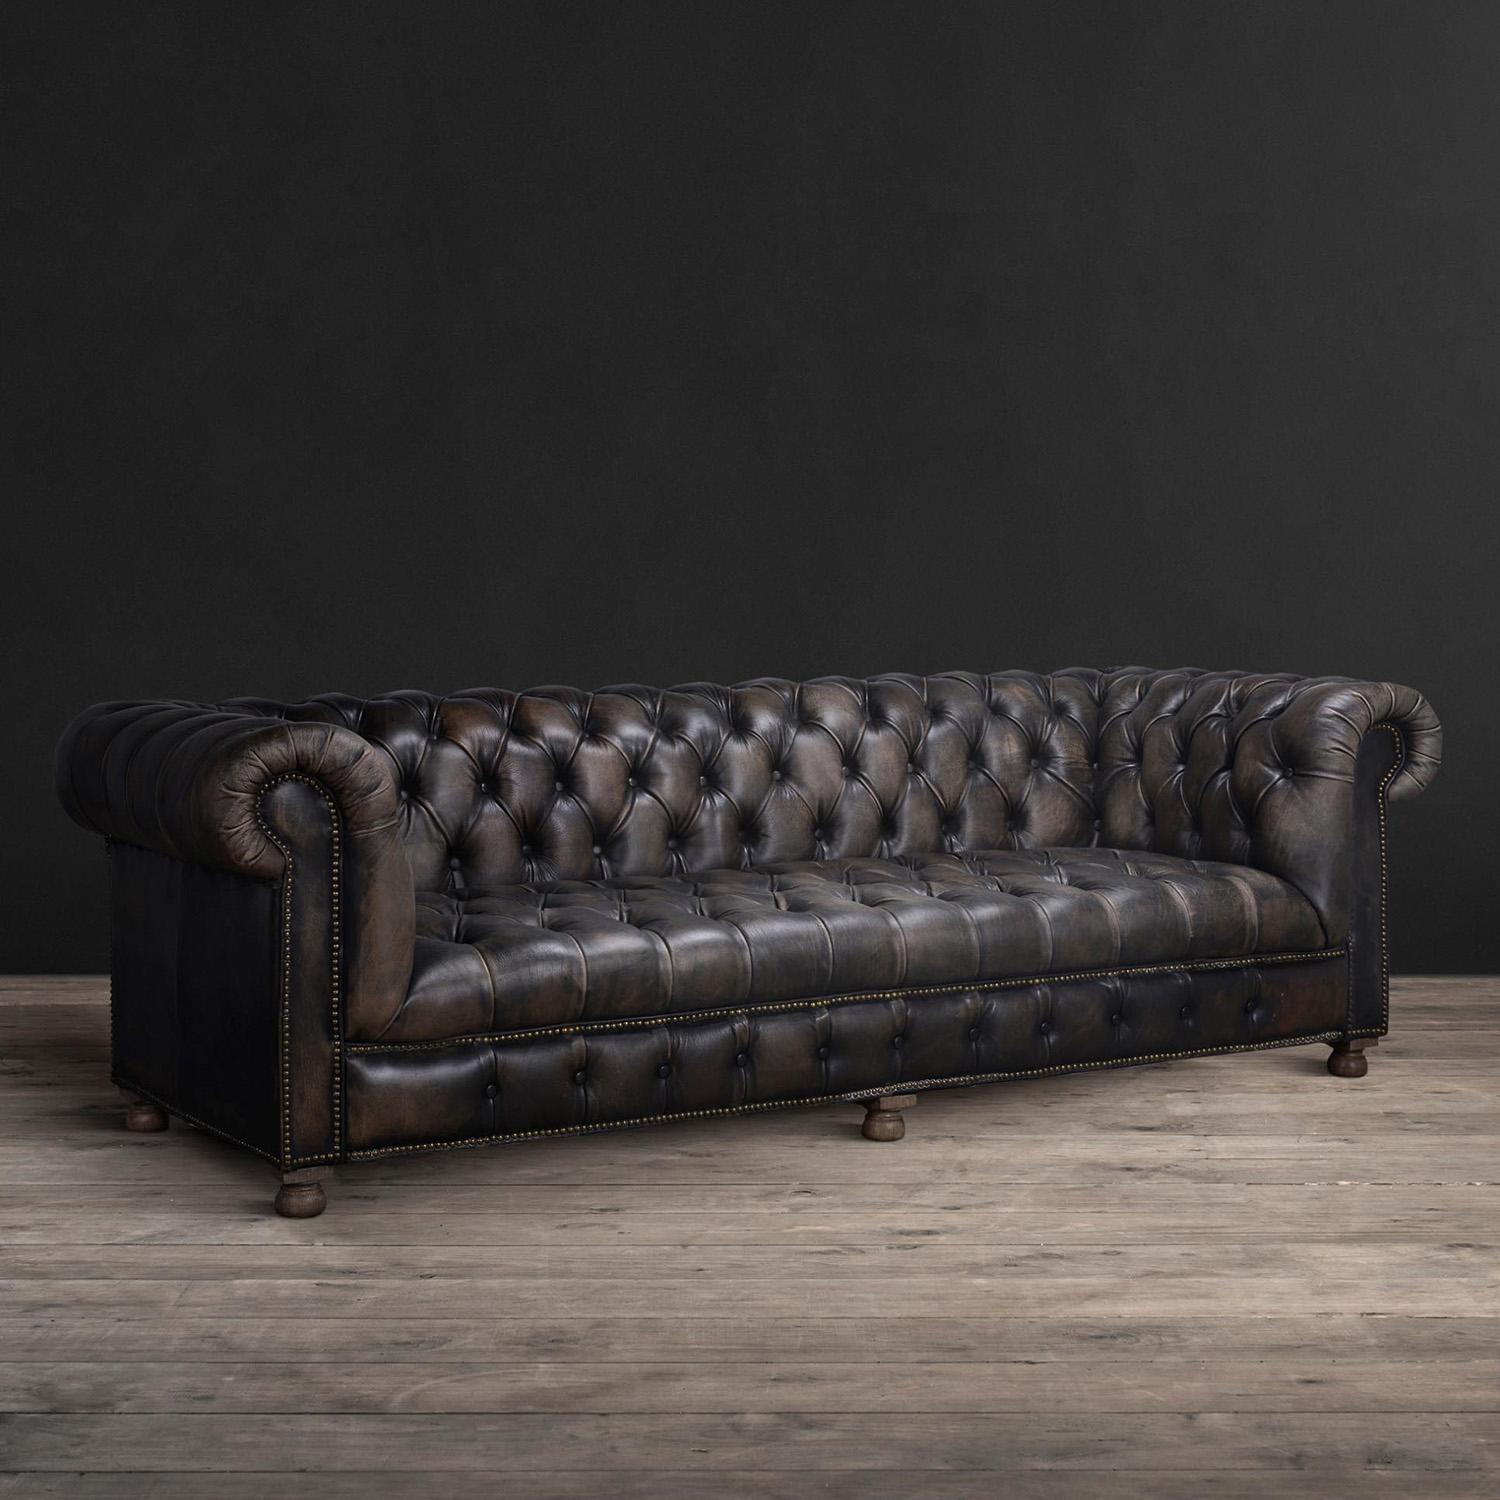 Xxl Chesterfield Sofa Chesterfield Sofa Wildlederoptik 2 Sitzer Couch